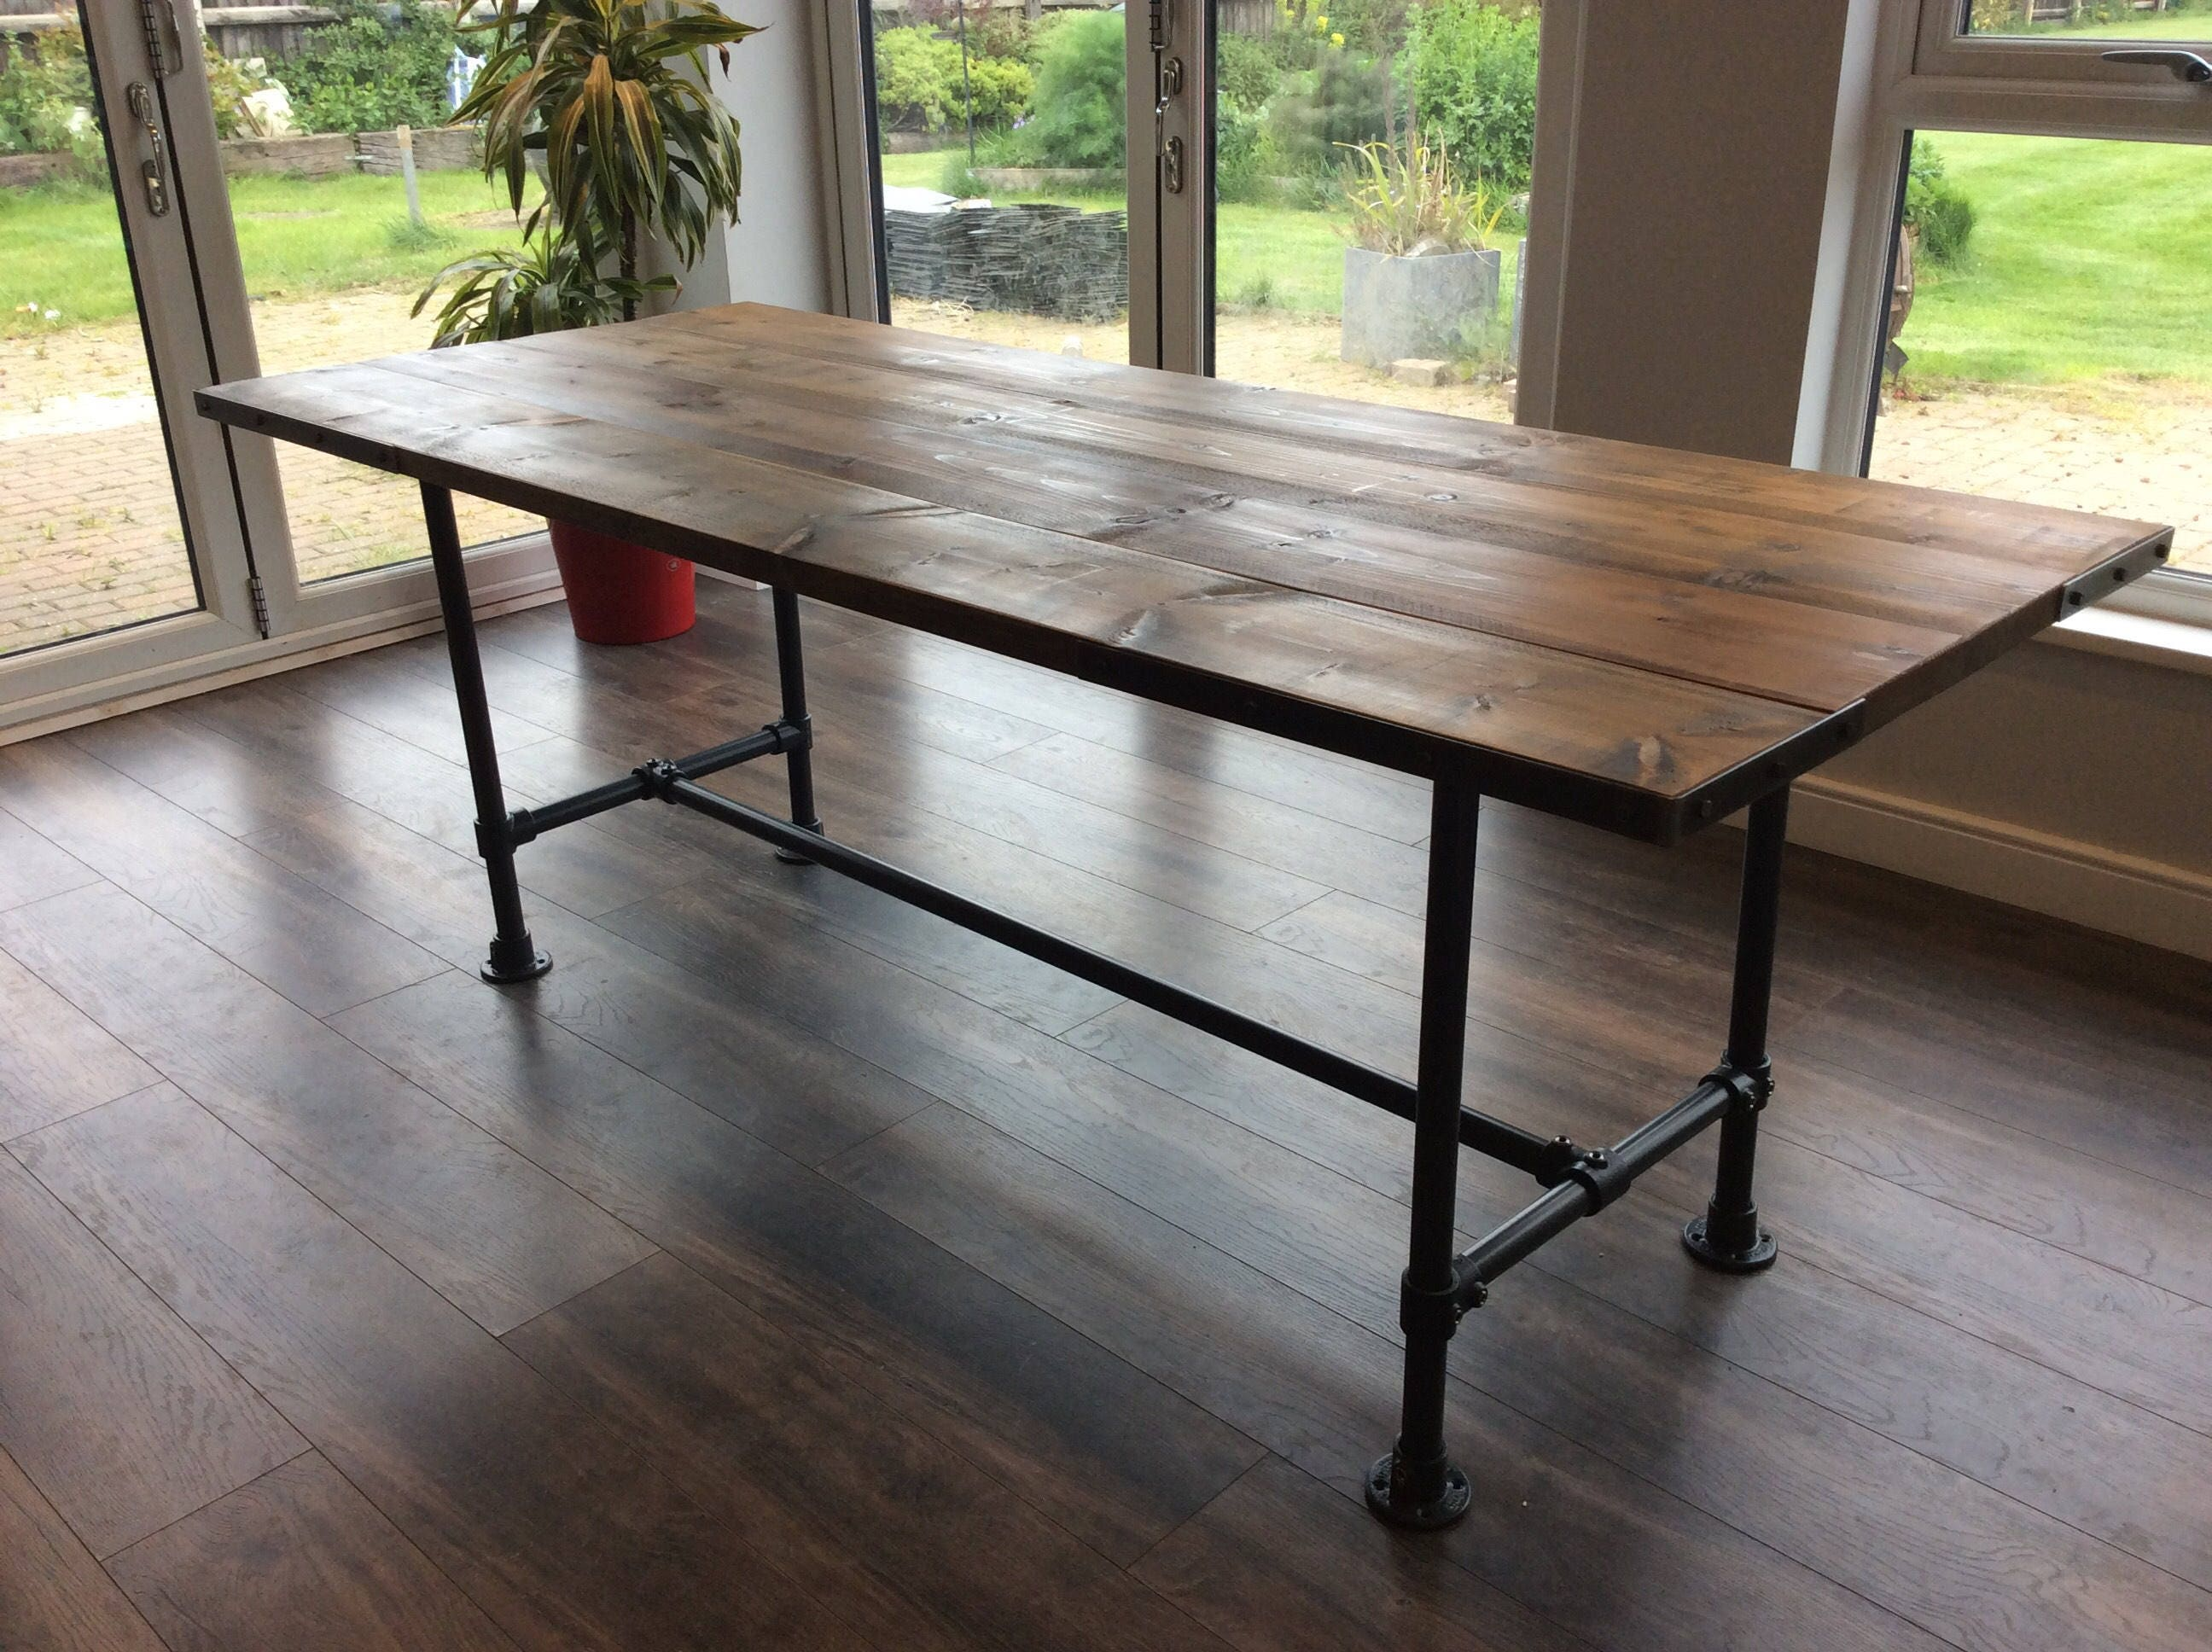 Solid wooden dining table dining table with bench industrial chic reclaimed industrial table repurposed timber